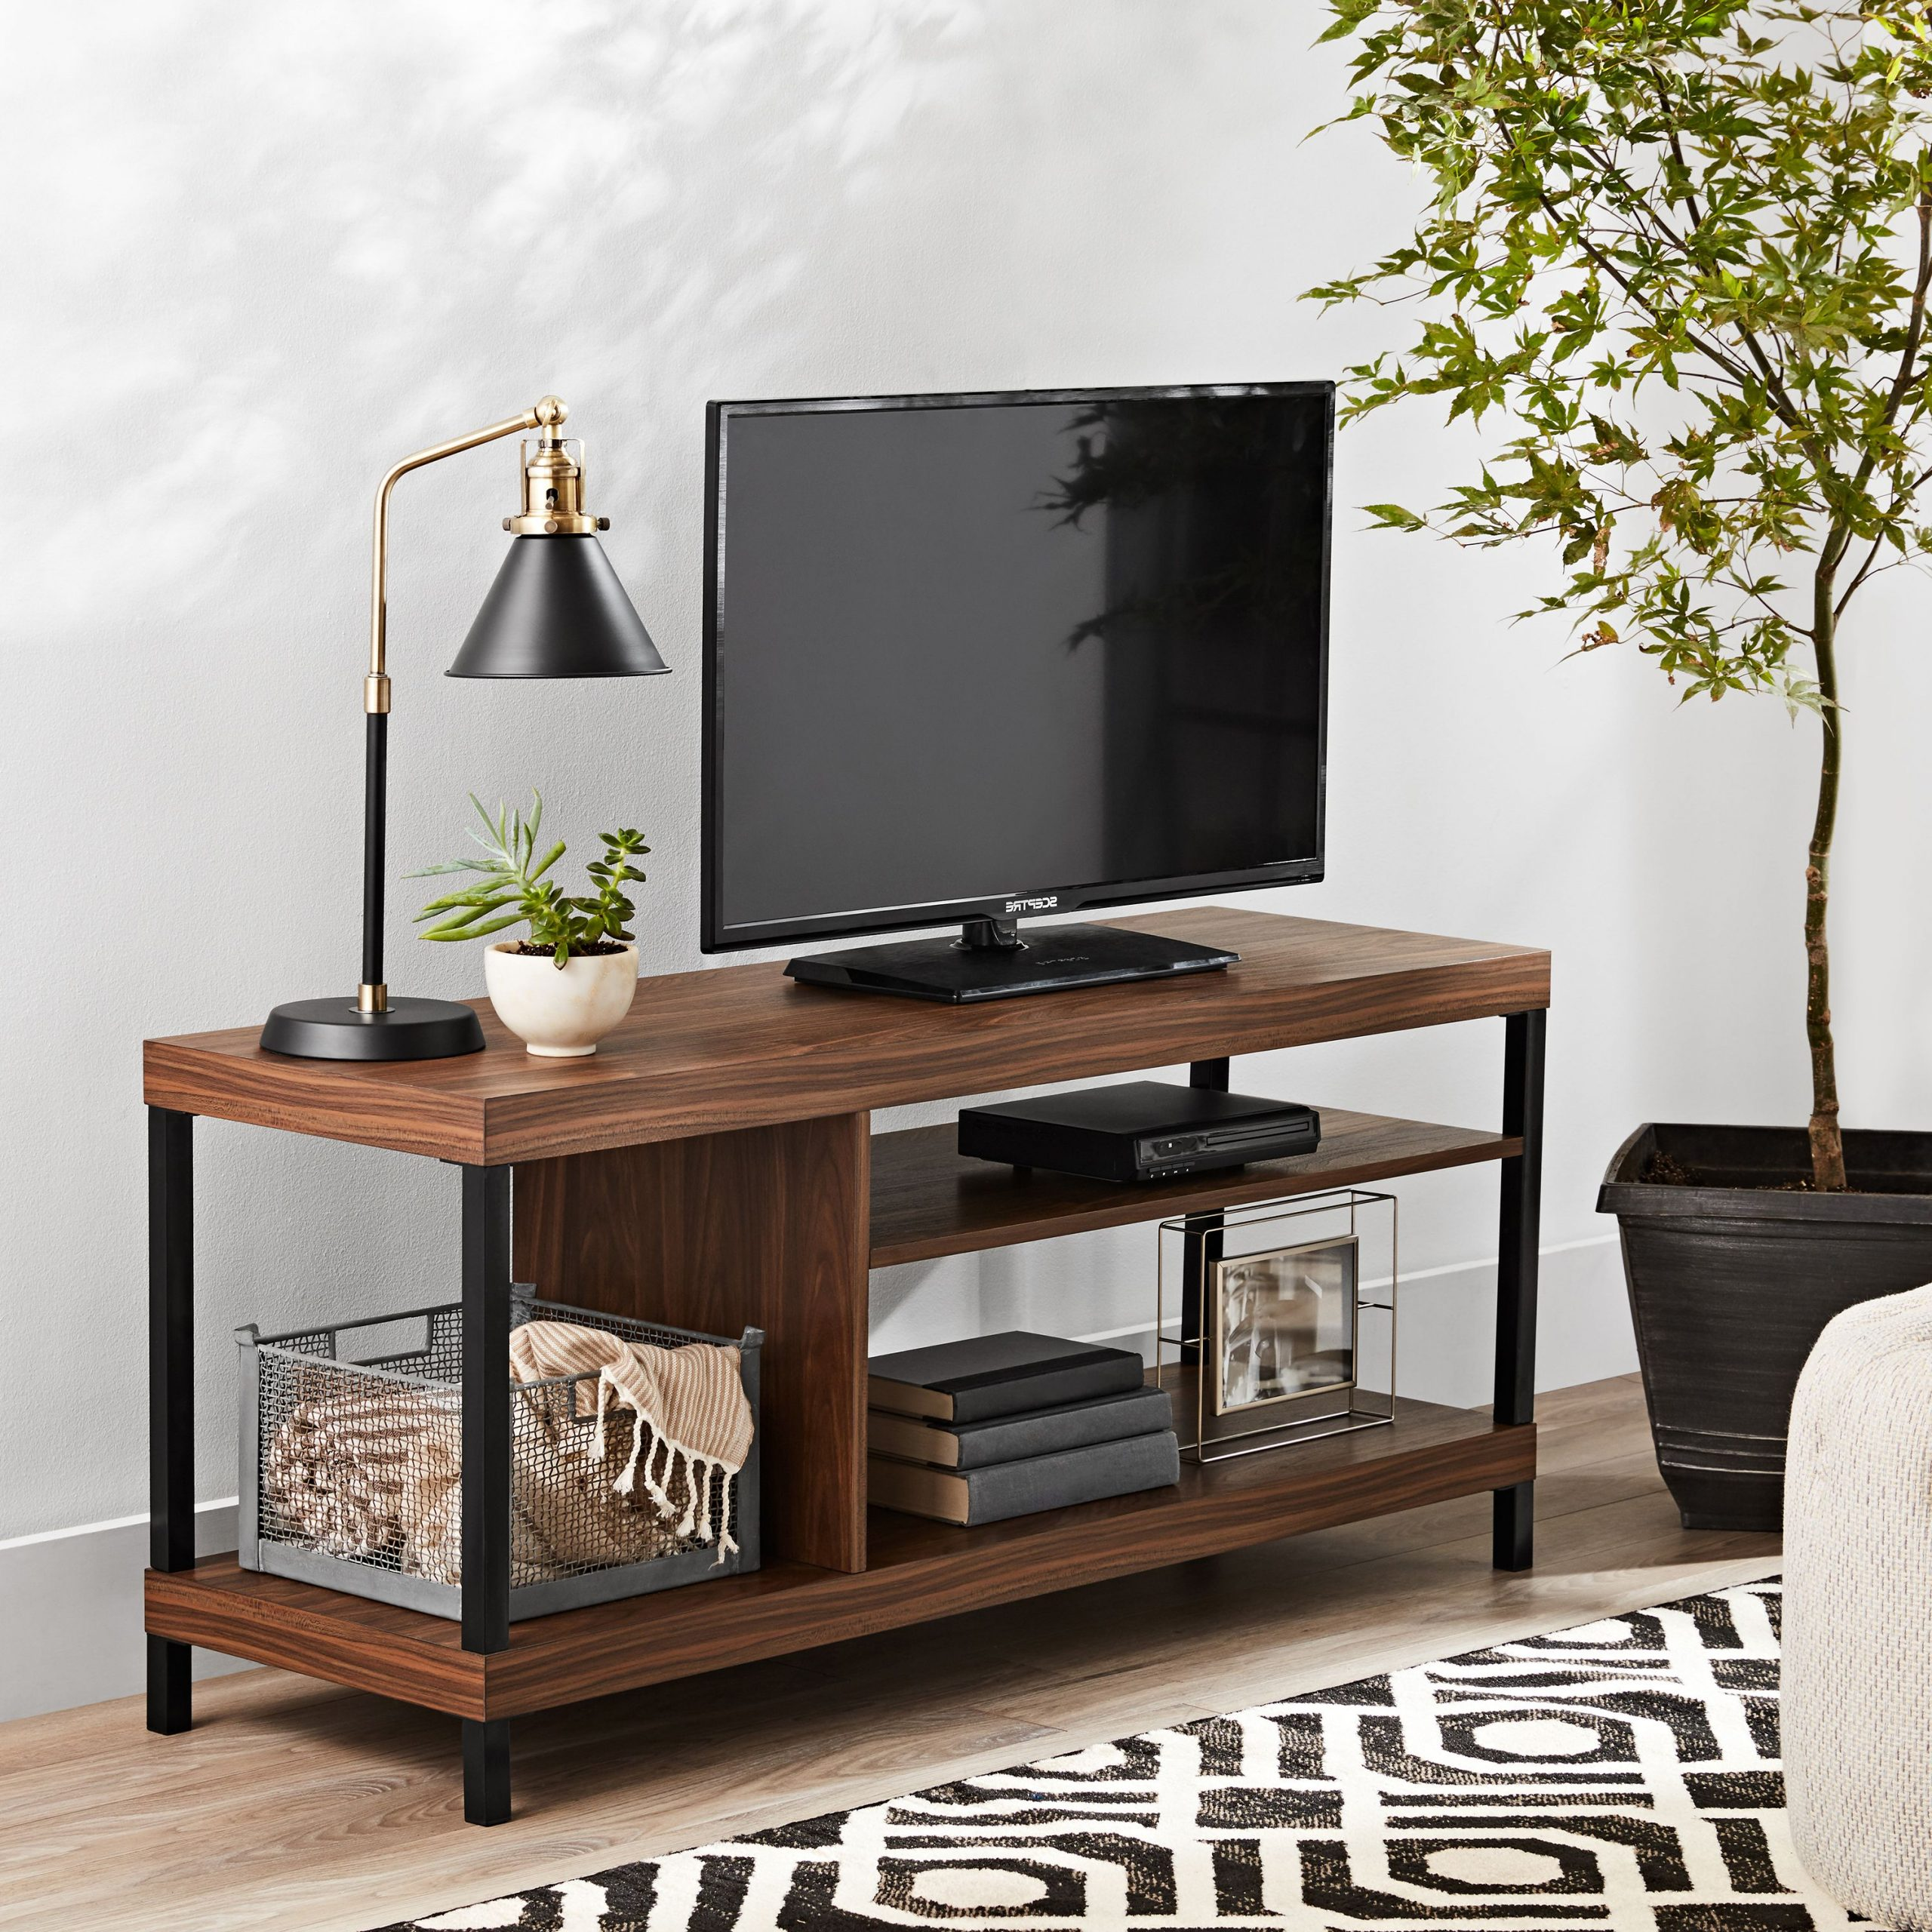 Mainstays Sumpter Park Collection Media Tv Stand For Tvs Intended For Mainstays Parsons Tv Stands With Multiple Finishes (View 7 of 20)